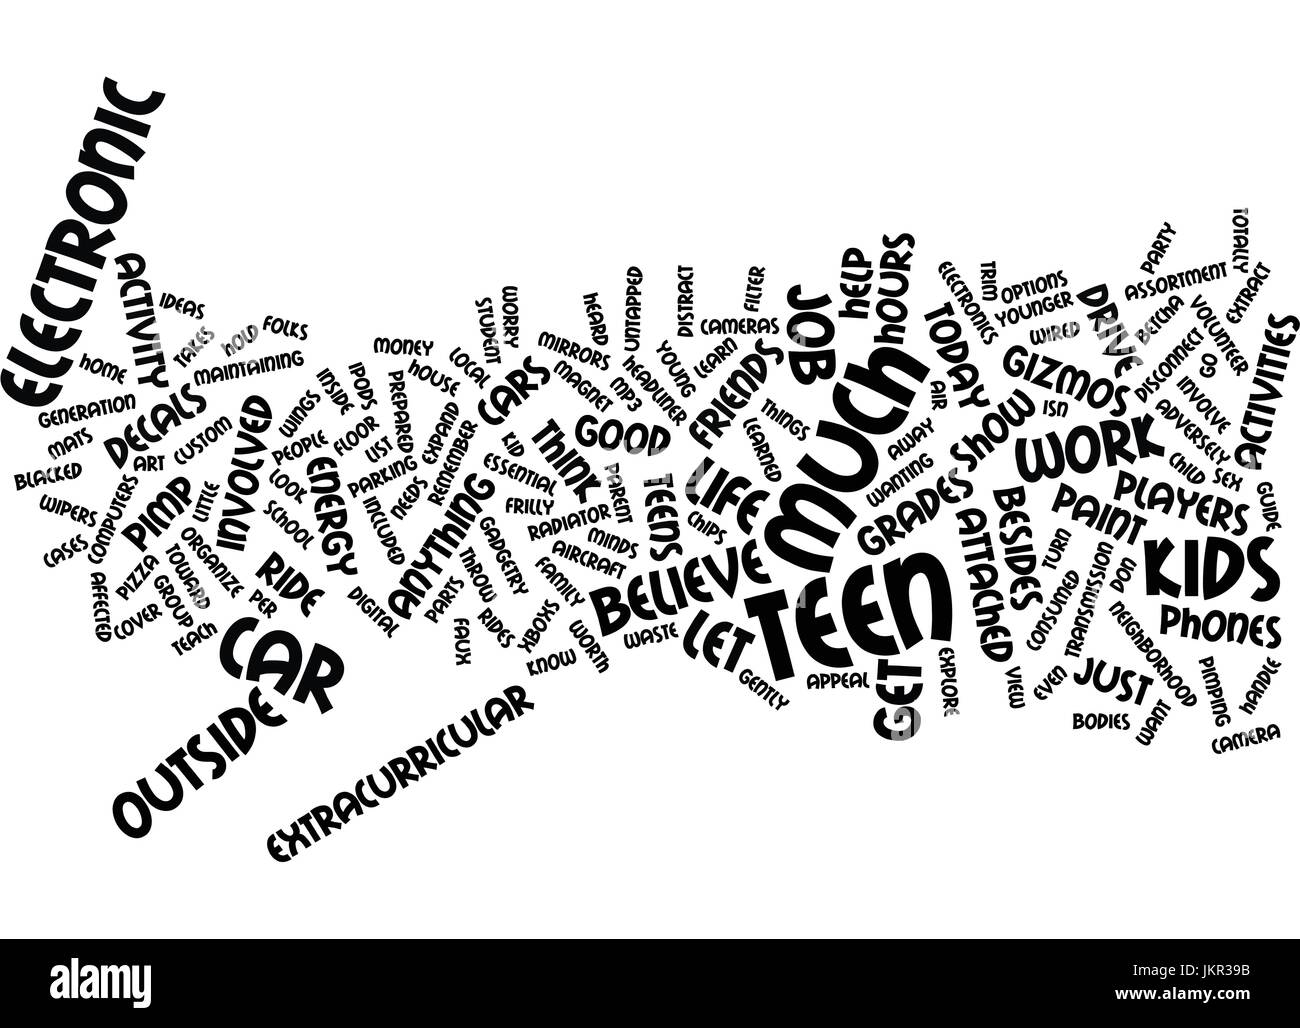 TEENS LIFE V ELECTRONICS Text Background Word Cloud Concept - Stock Image